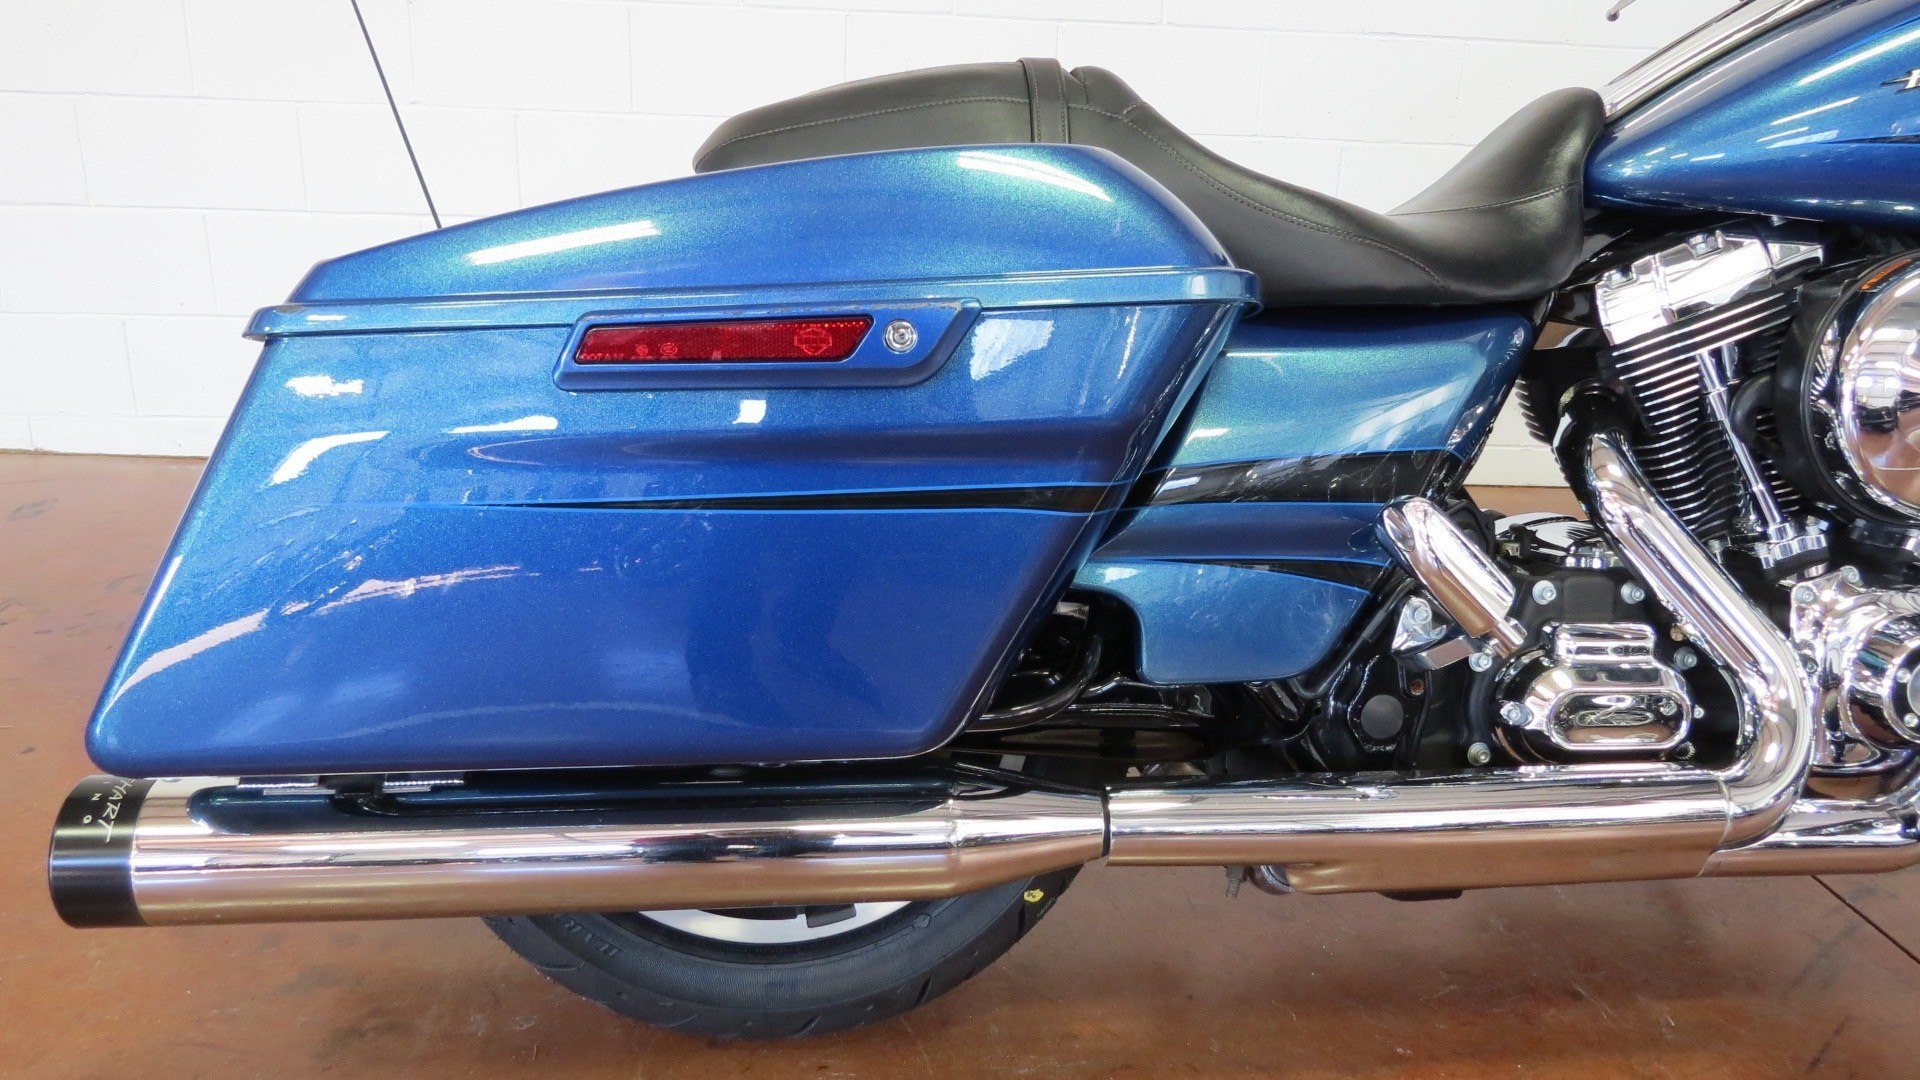 2014 Harley-Davidson Street Glide in Sunbury, Ohio - Photo 27